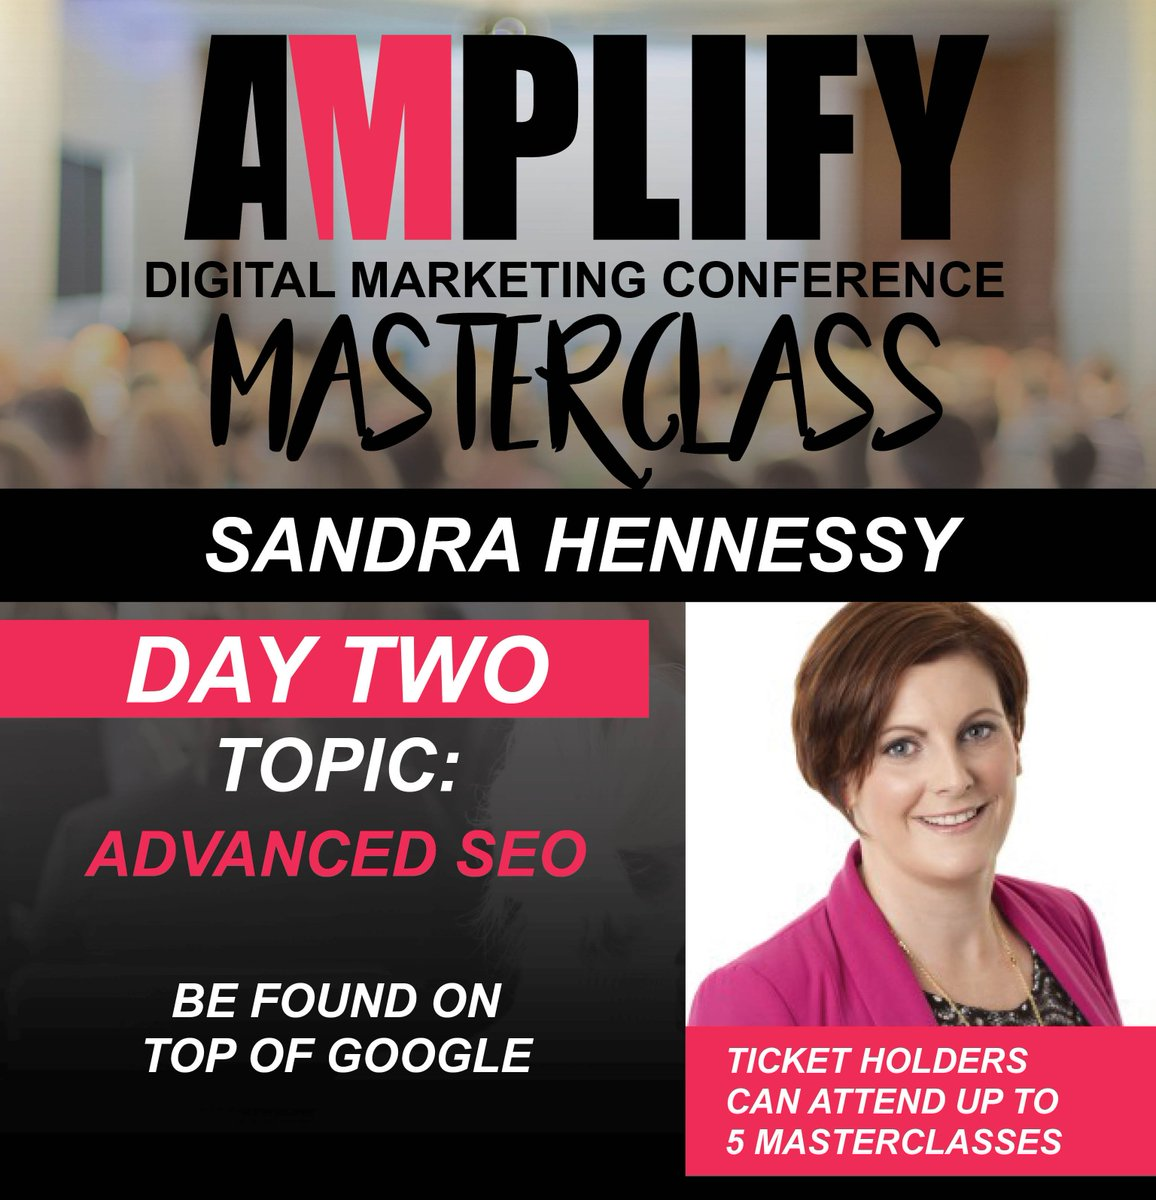 One of the many reasons to attend @Amplify_Digital in #Cork   Learn about #SEO from @SandraHennessy #MASTERCLASS  #AmplifyDigi #businesstips <br>http://pic.twitter.com/HzayebZBSJ